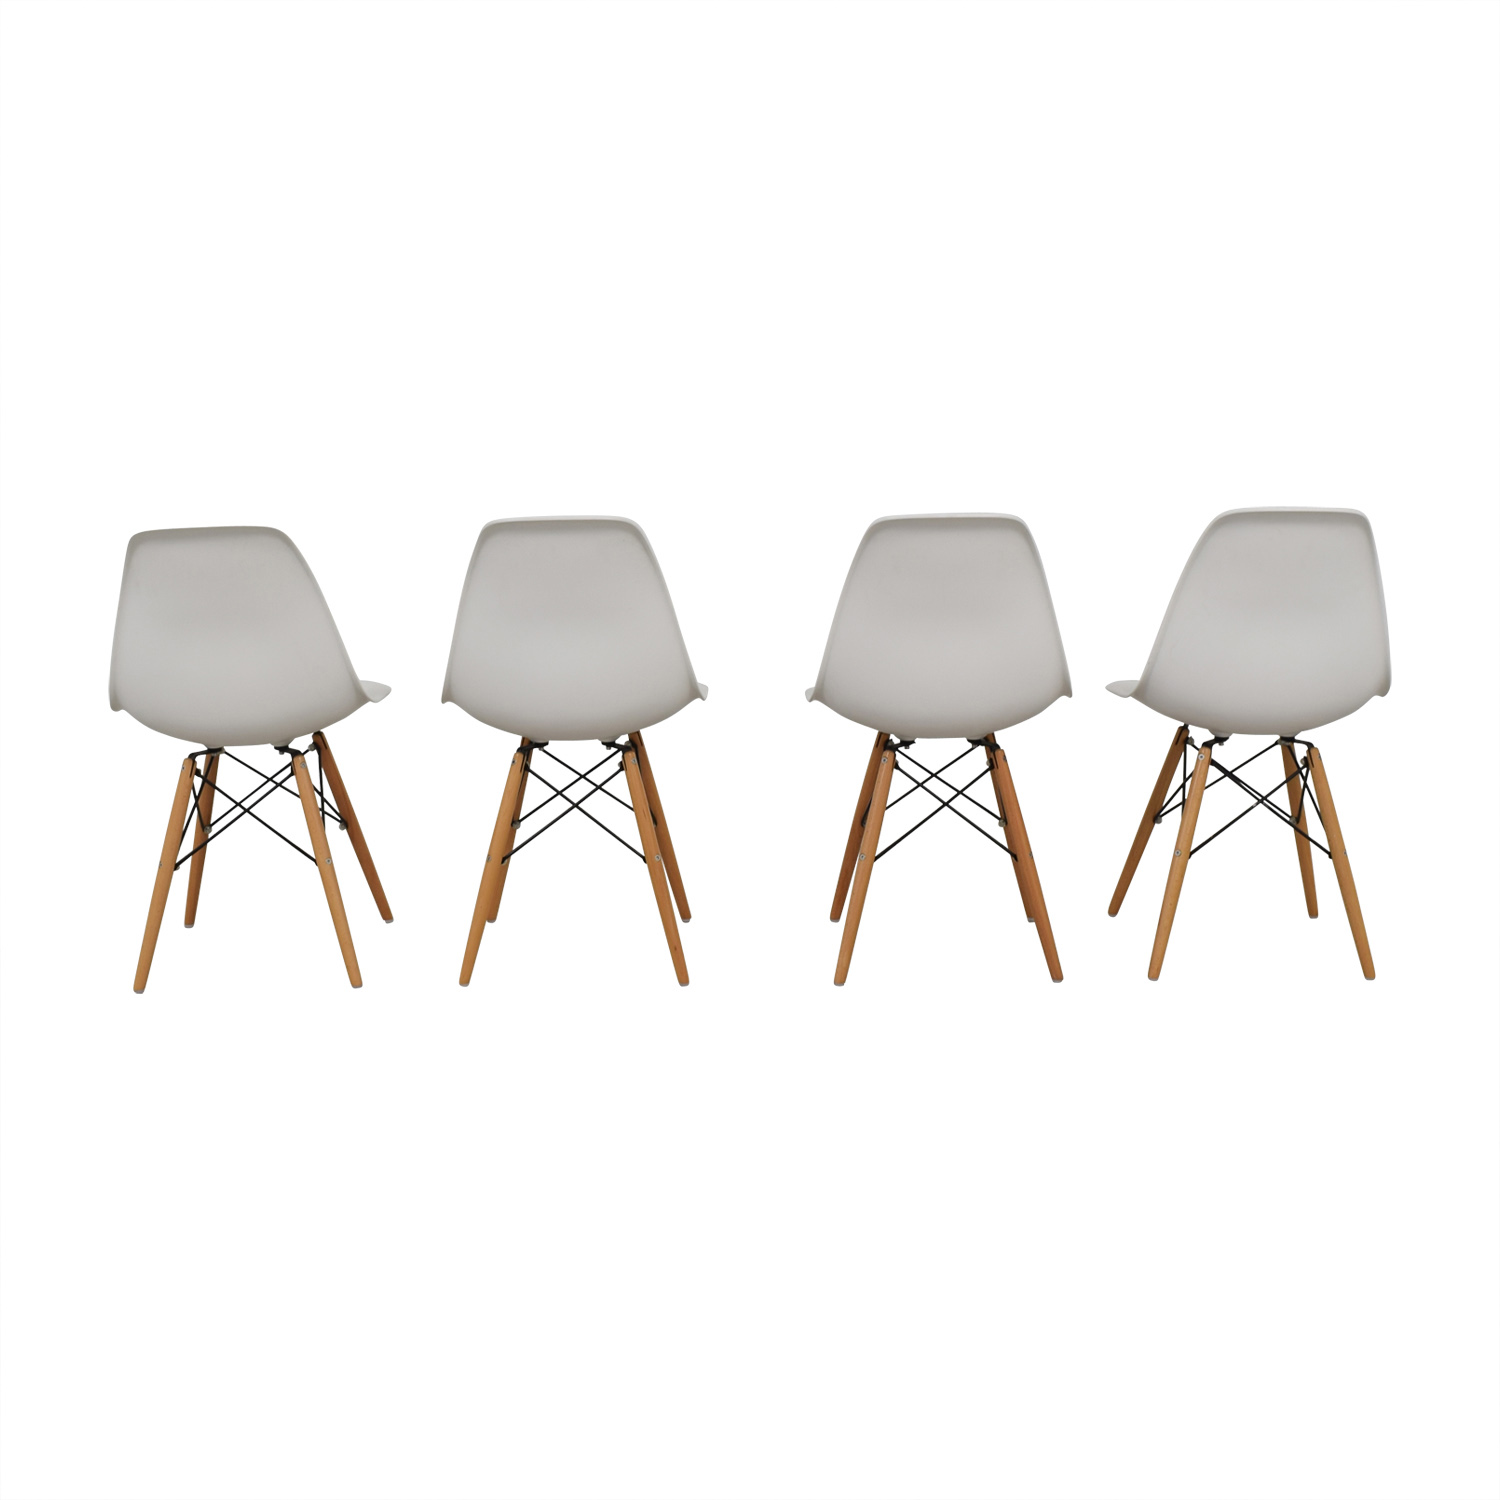 Rove Concept Eames Replica Dowel Leg White Molded Dining Chairs / Dining Chairs